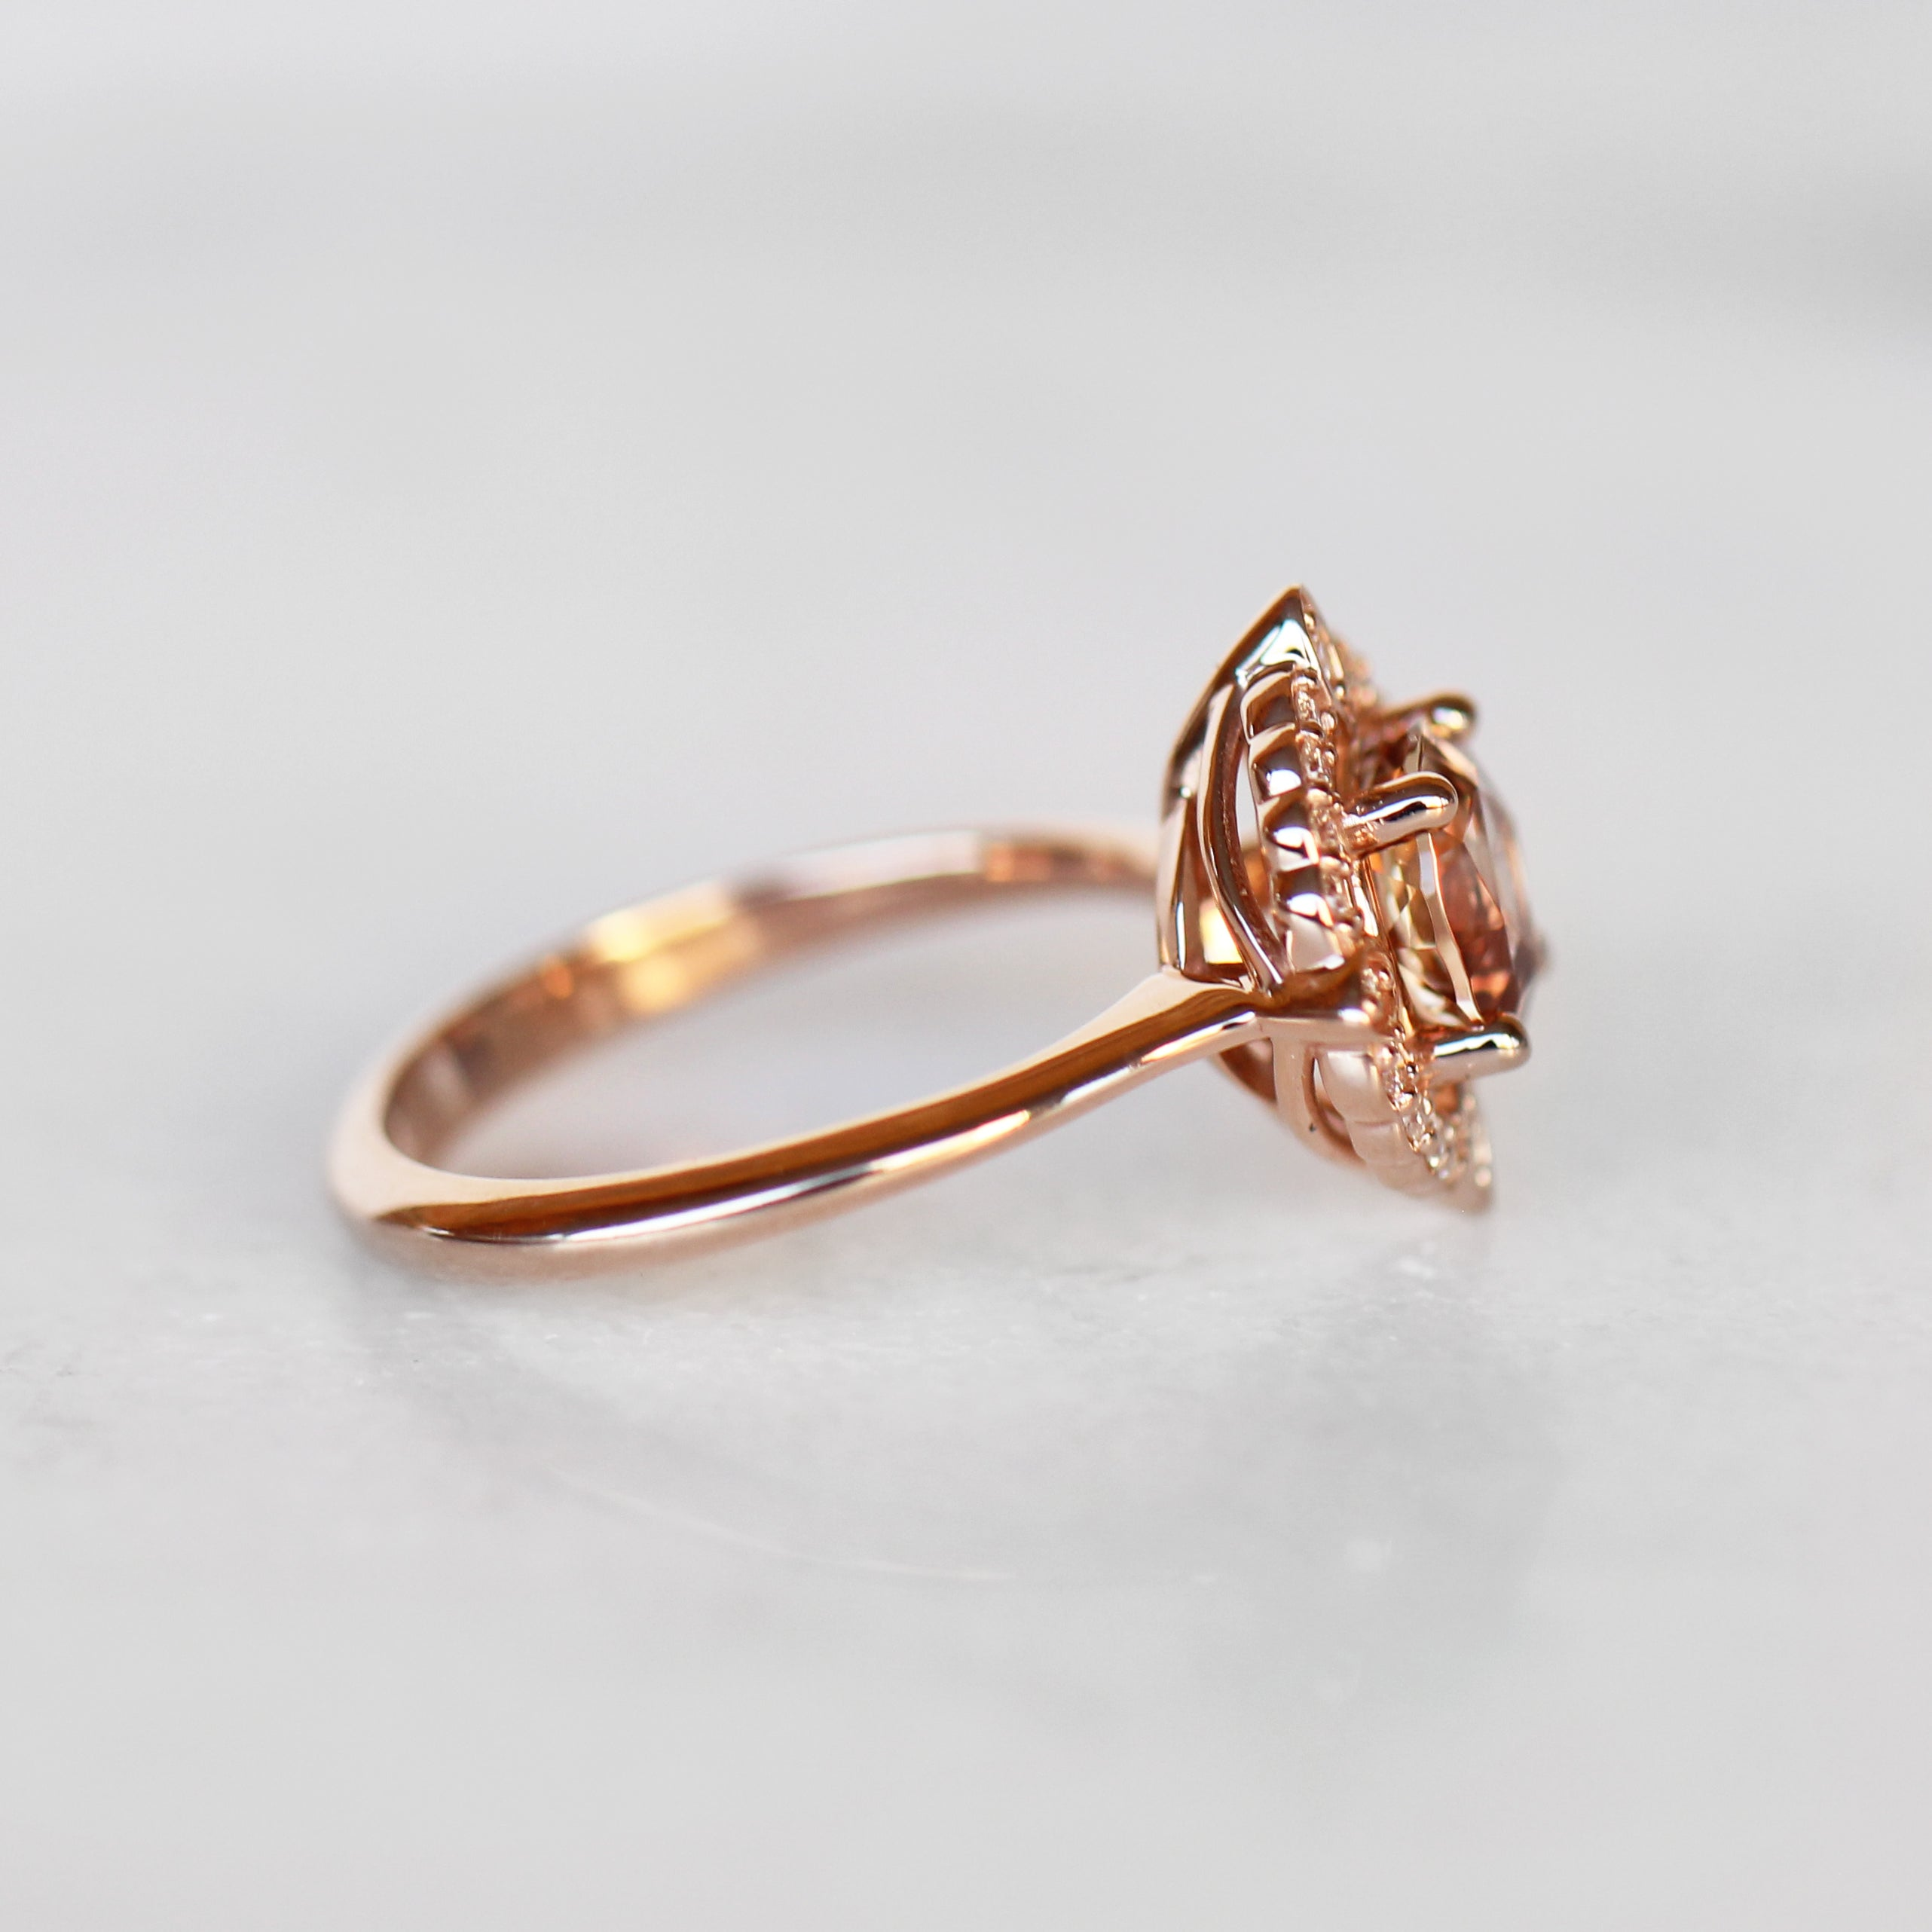 Compass Ring with 1.07 Carat Round Sunstone in 10k Rose Gold- Ready to Size and Ship - Celestial Diamonds ® by Midwinter Co.